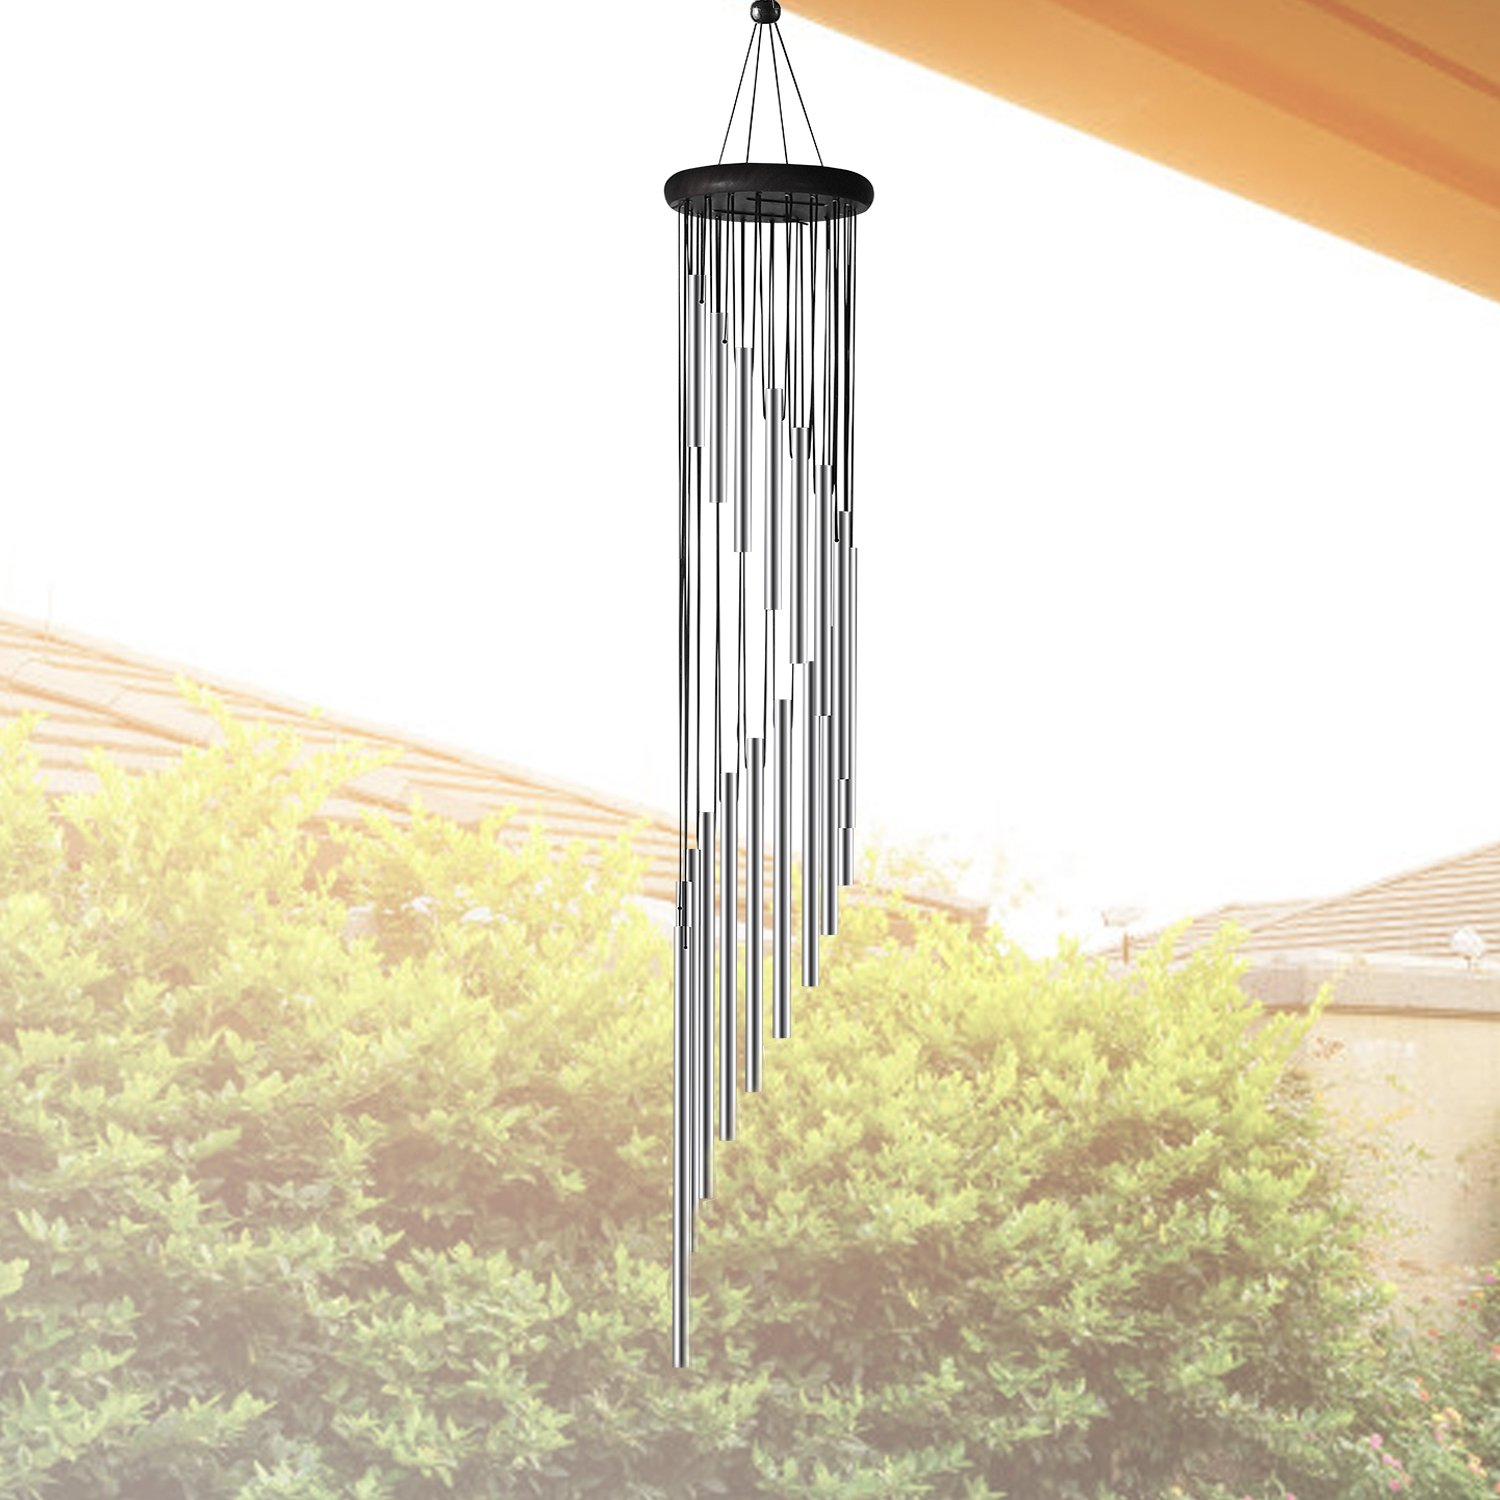 Large Wind Chimes Outdoor - 35'' Unique Amazing Grace Wind Chimes with 18 Roots Aluminum Alloy Tubes and Wood Design, Inspirational Collection for Outdoor Patio Backyard Home Decor Sliver